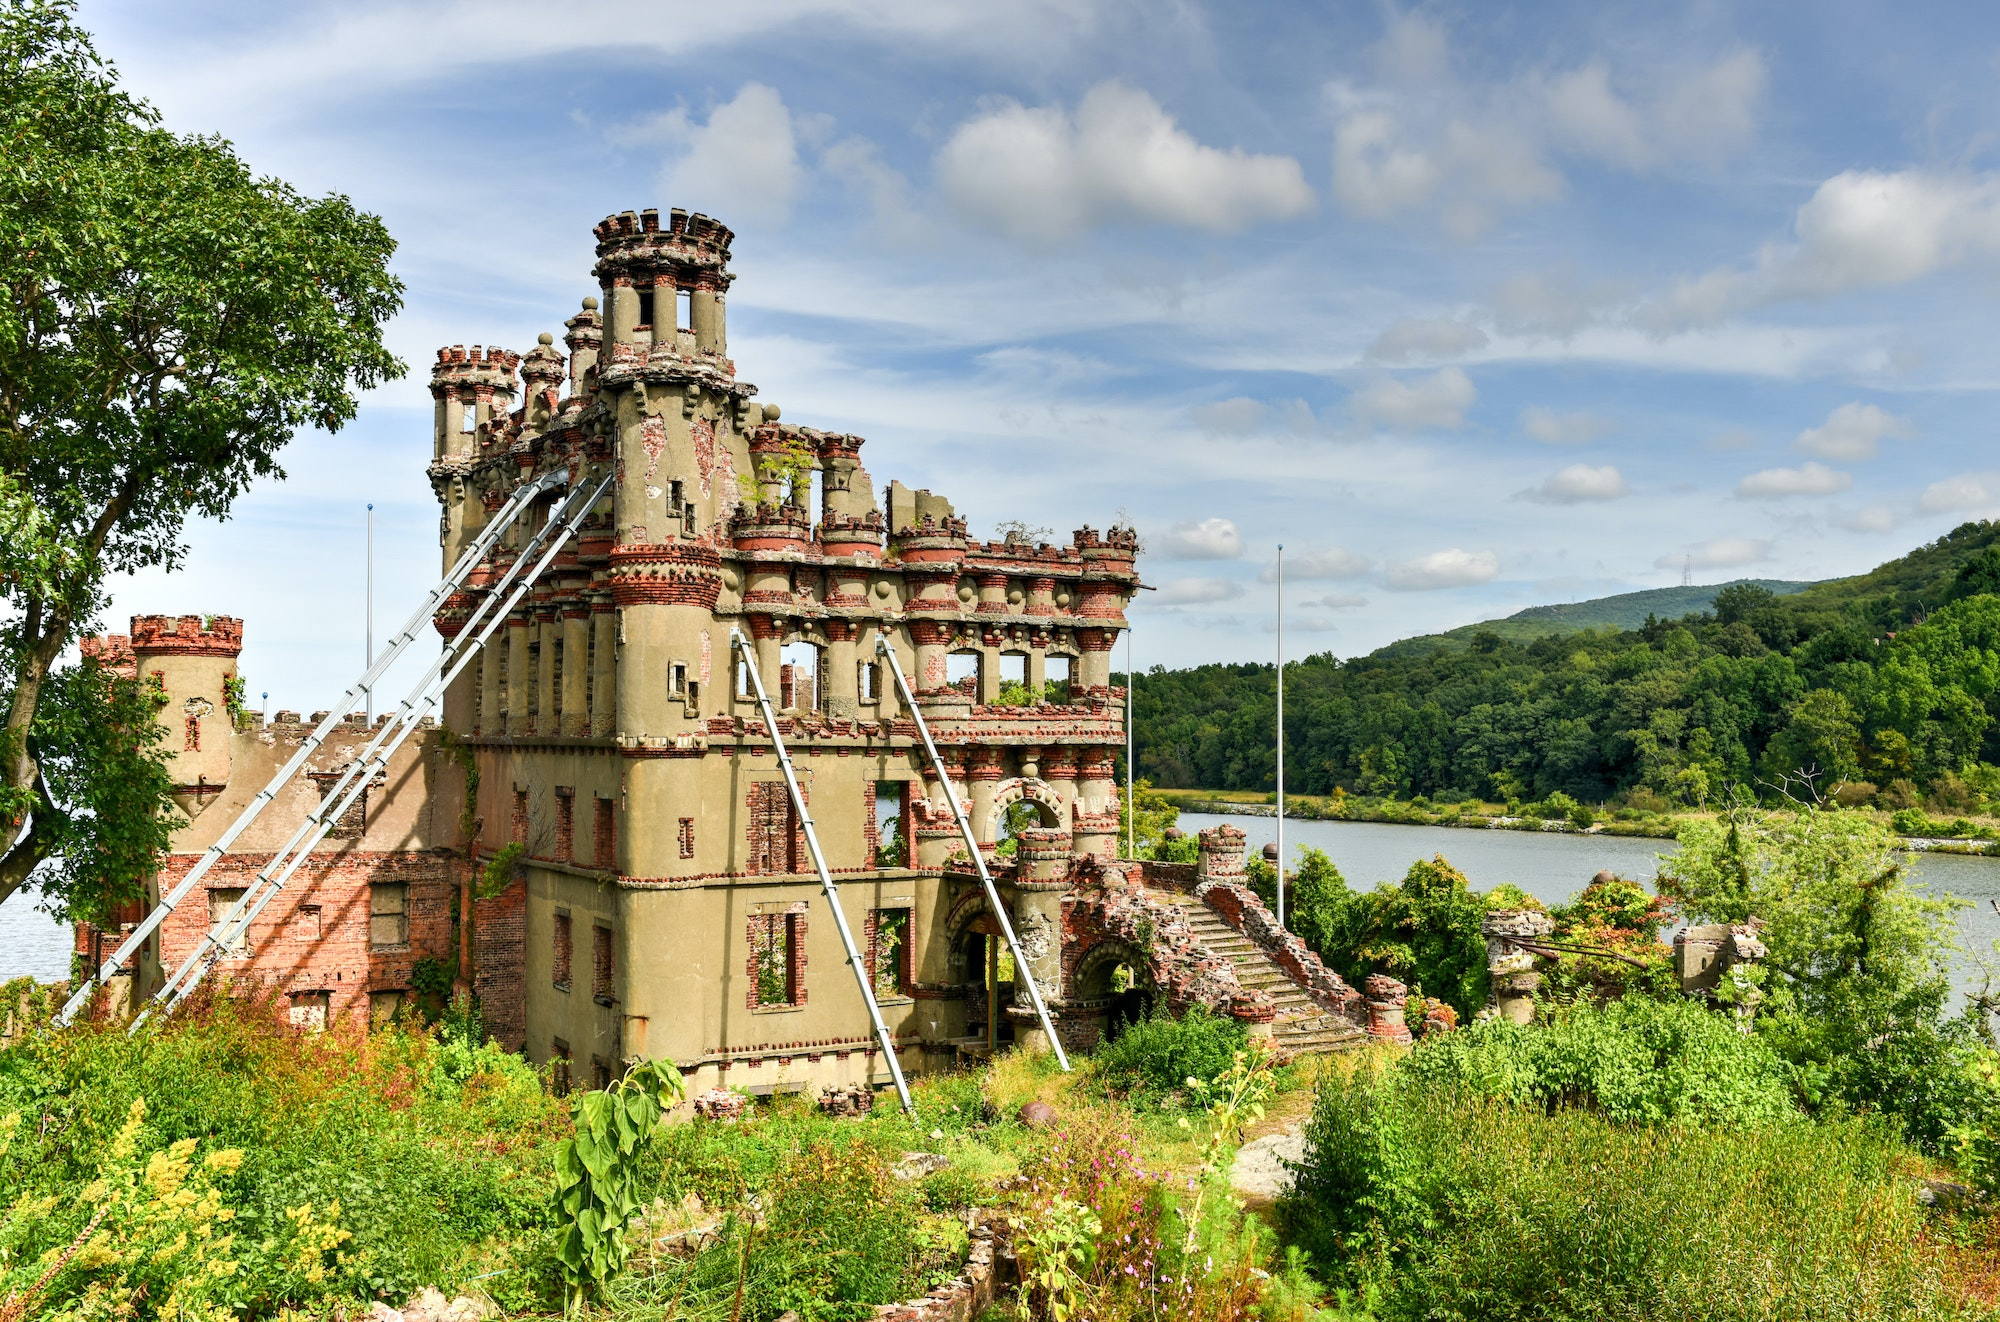 Scottish collector Francis Bannerman built this New York castle not as a home, but as an arsenal for his immense weapons collection.